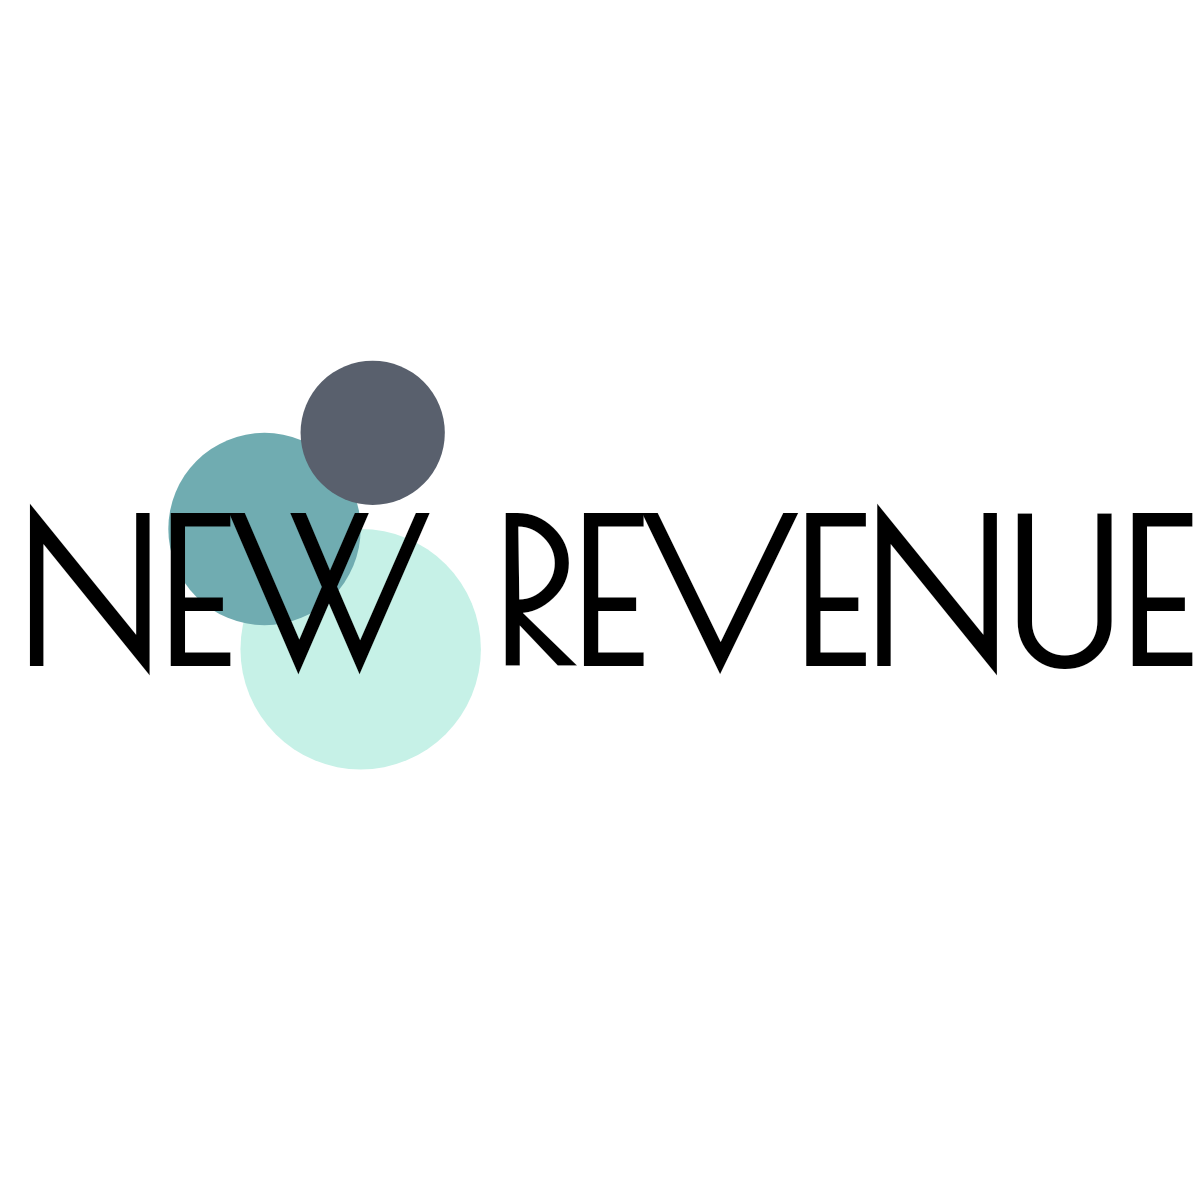 New Revenue Consulting LLC